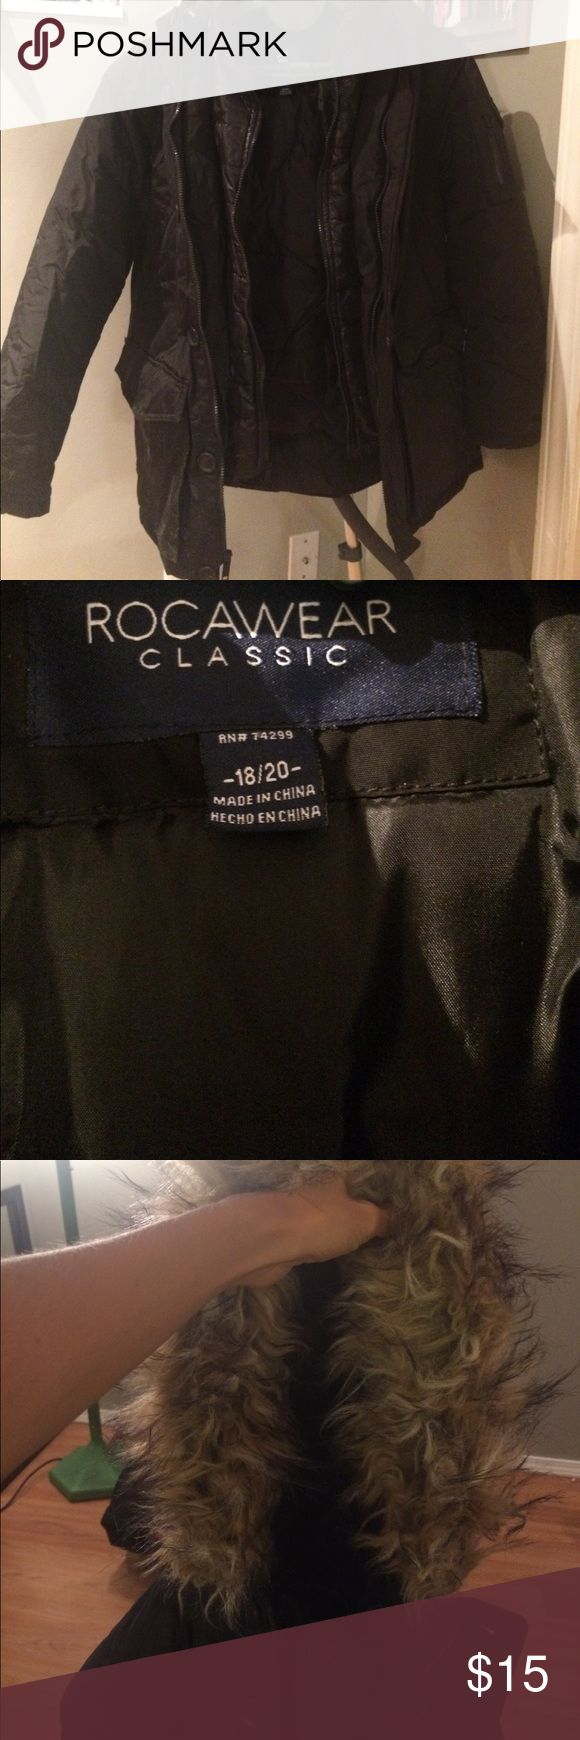 Winter coat for sale! Only worn once Long Winter coat with several pockets and hoodie. Jackets & Coats Puffers